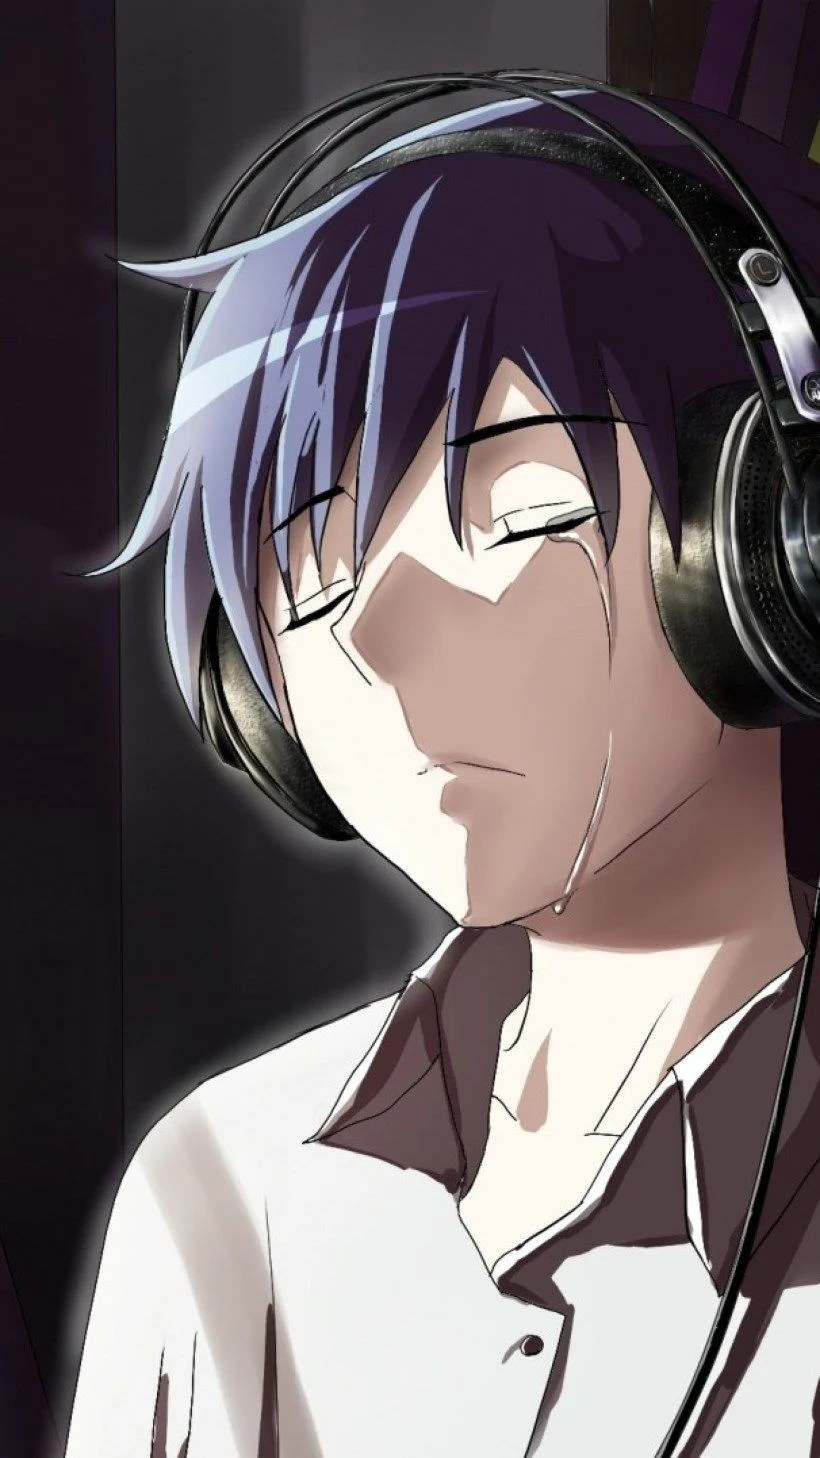 Crying Anime Boy Hd Wallpapers Wallpaper Cave